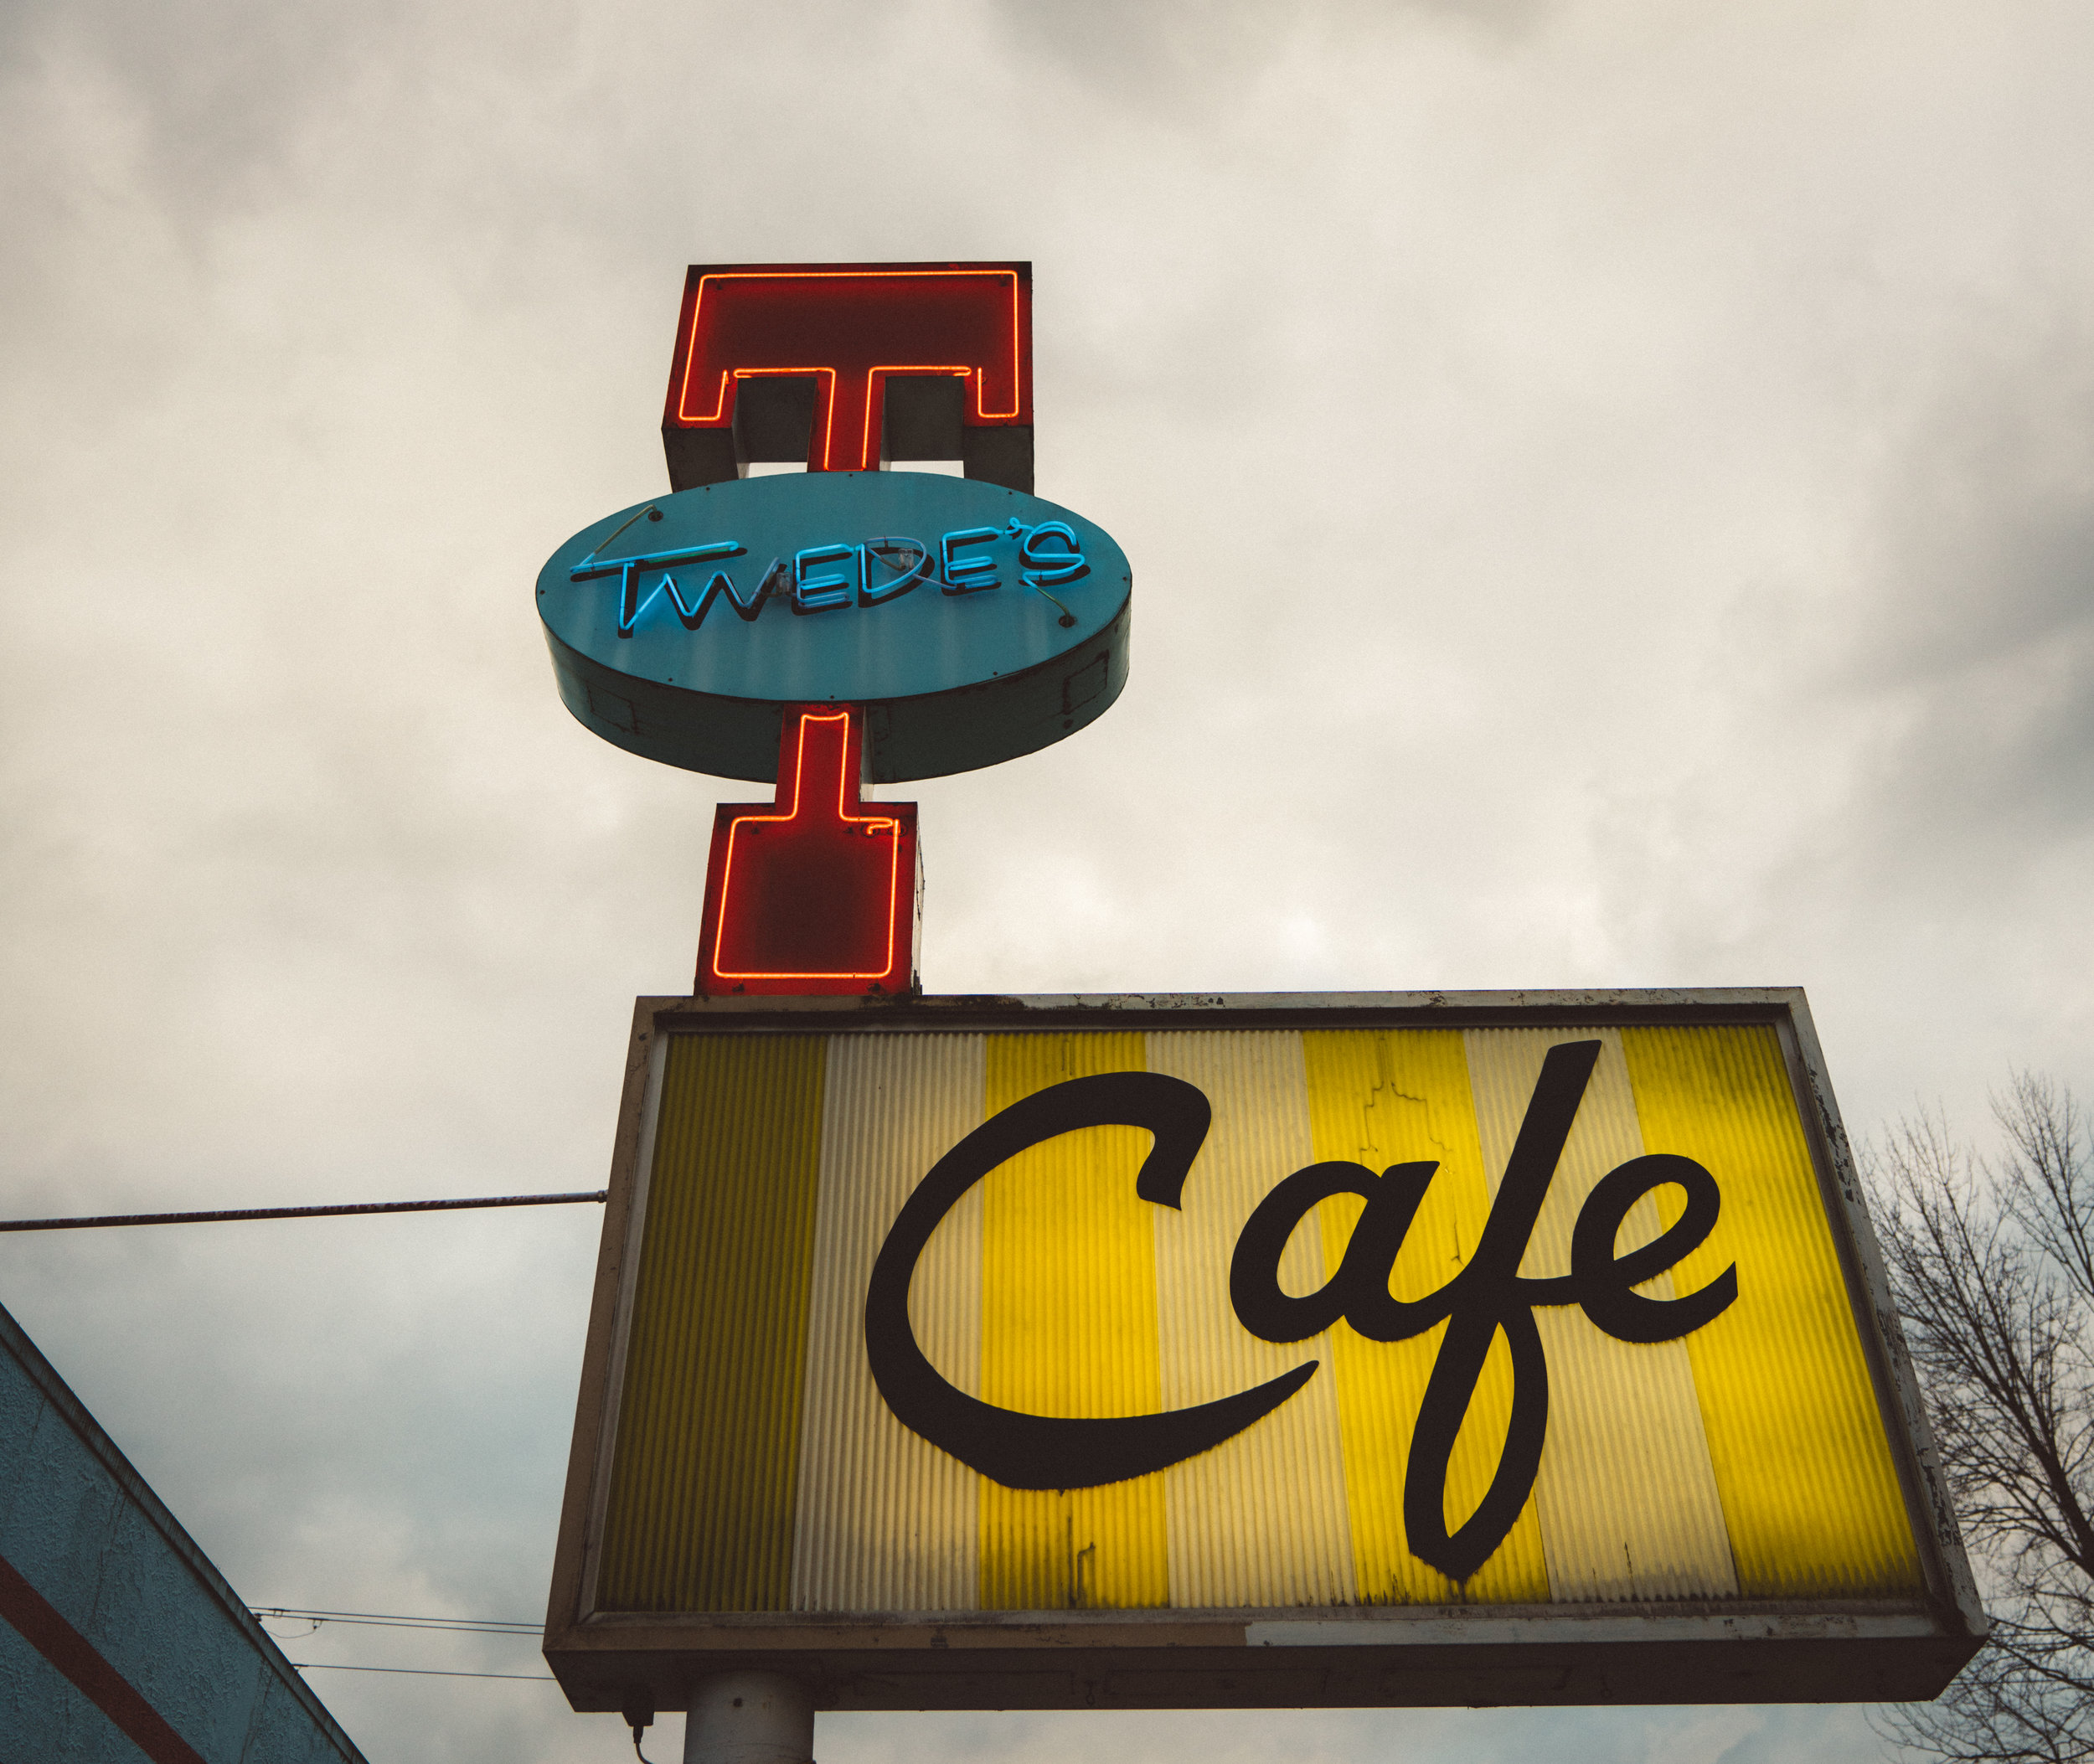 The iconic Twede's Cafe in North Bend, WA.